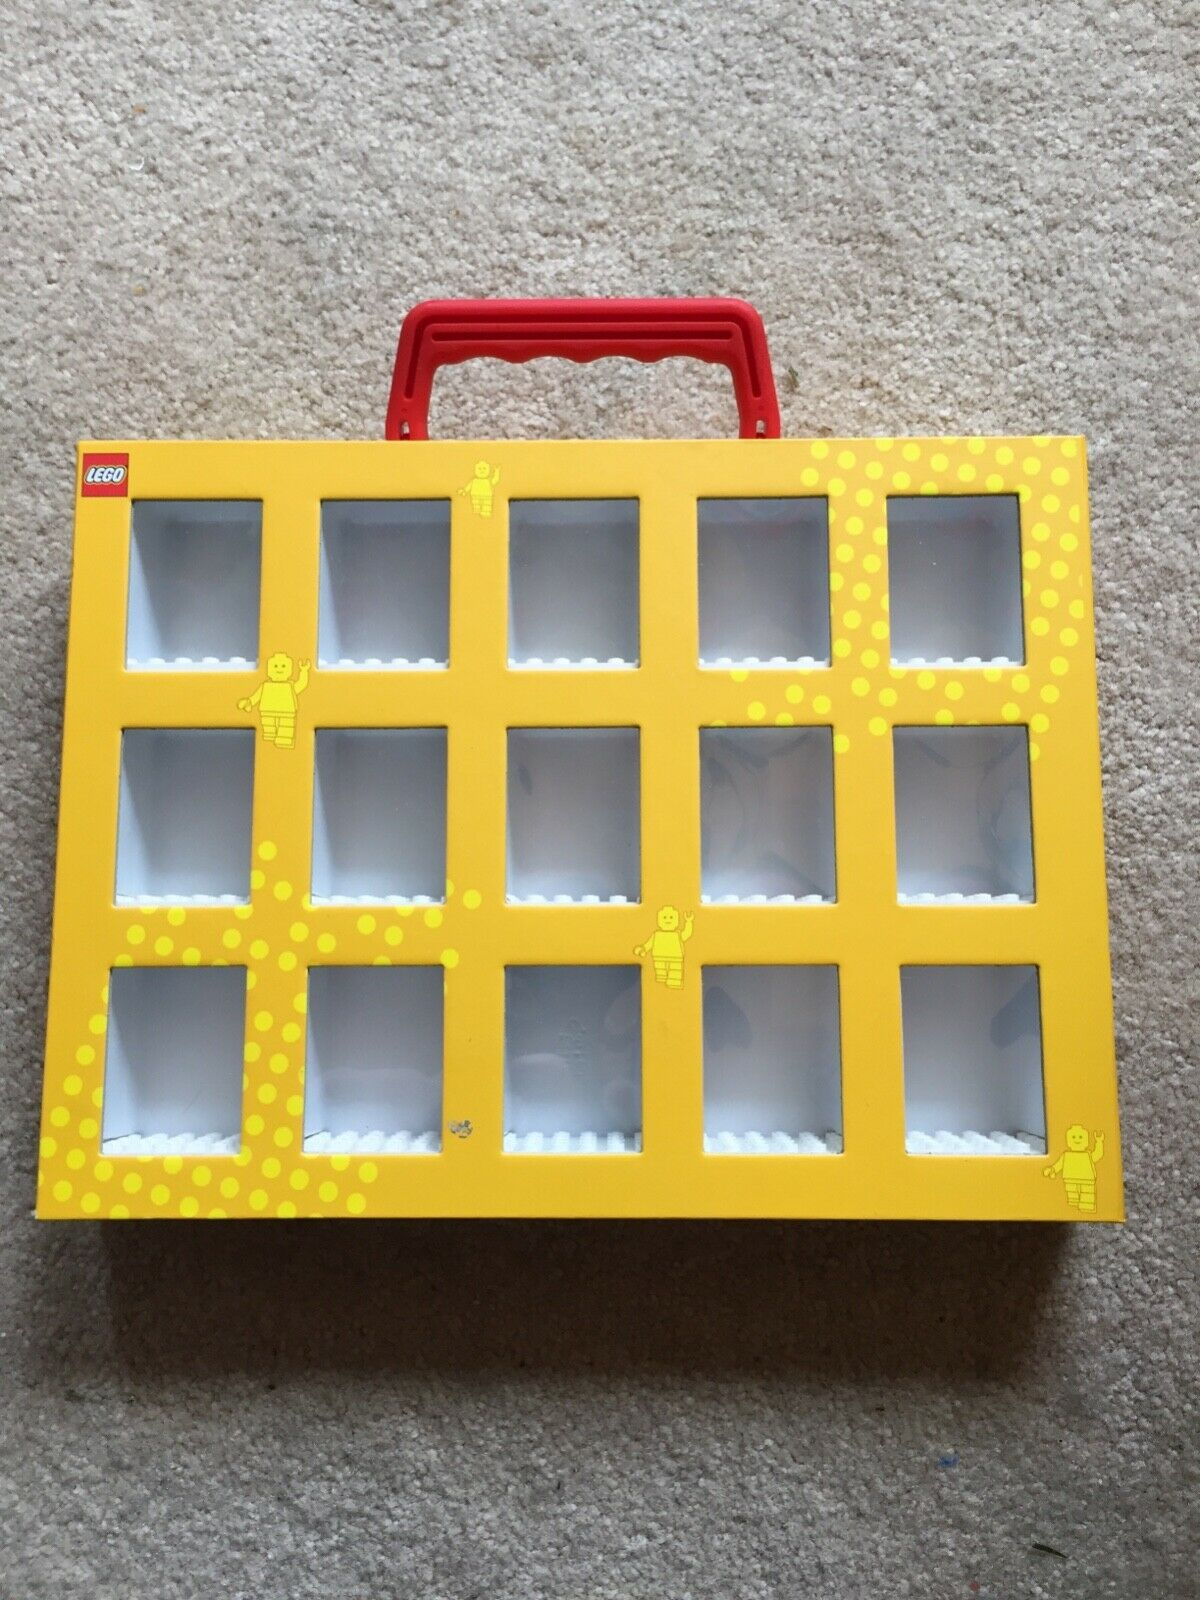 LEGO 116T1 Minifigure case. Hard to find. Excellent condition condition condition cf944f